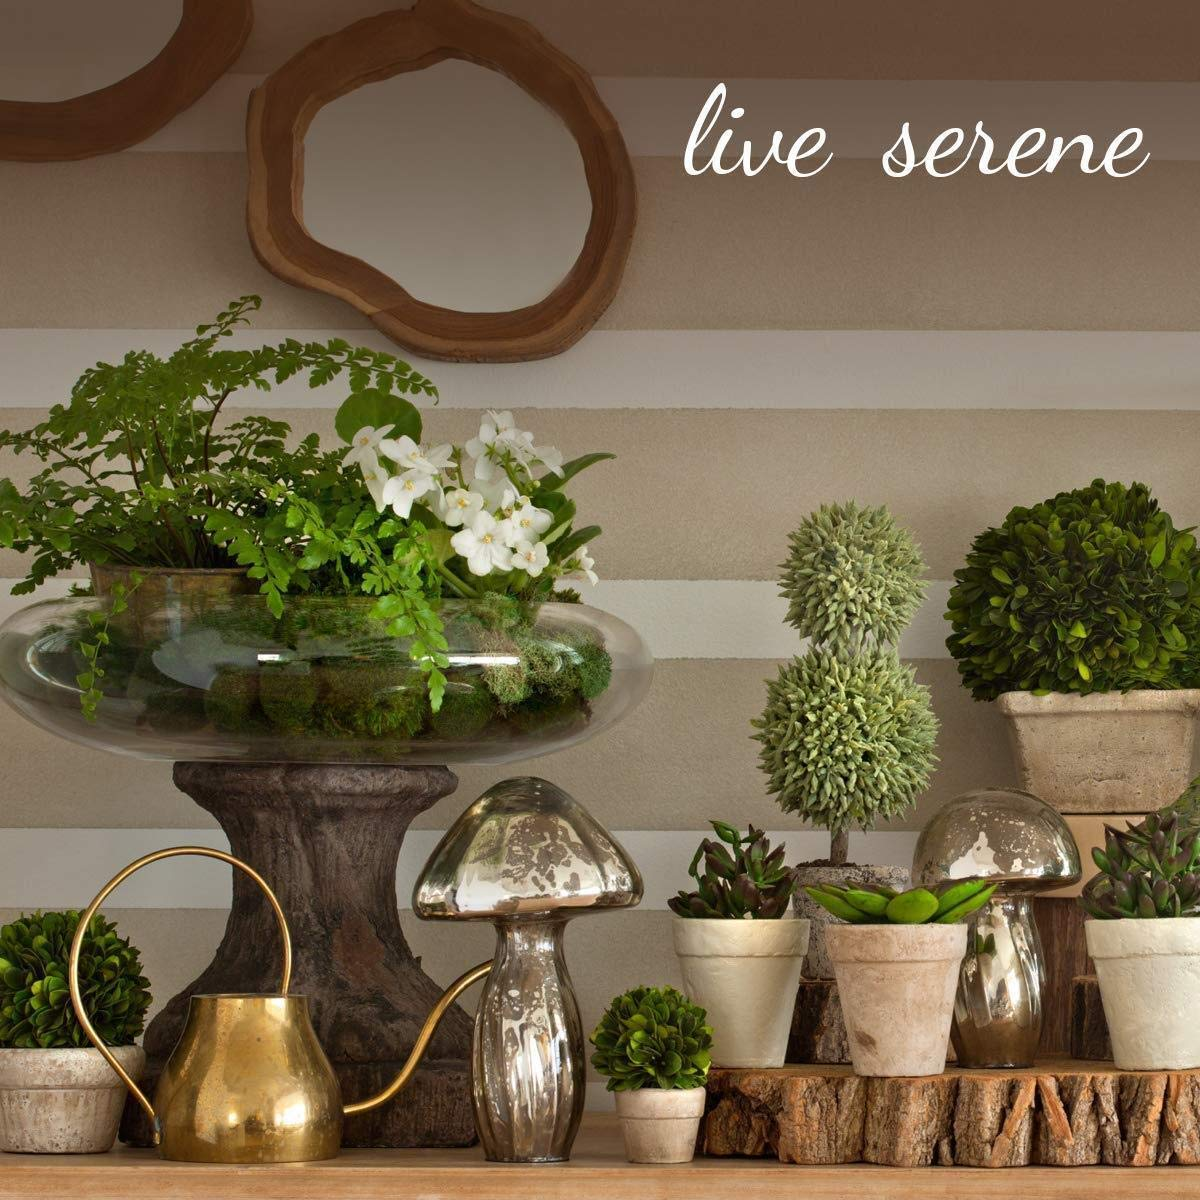 Serene Spaces Living 5 Feet Long Faux Magnolia Leaf Garland, Ideal to Hang at Wedding, Store Display, Window Sill by Serene Spaces Living (Image #2)